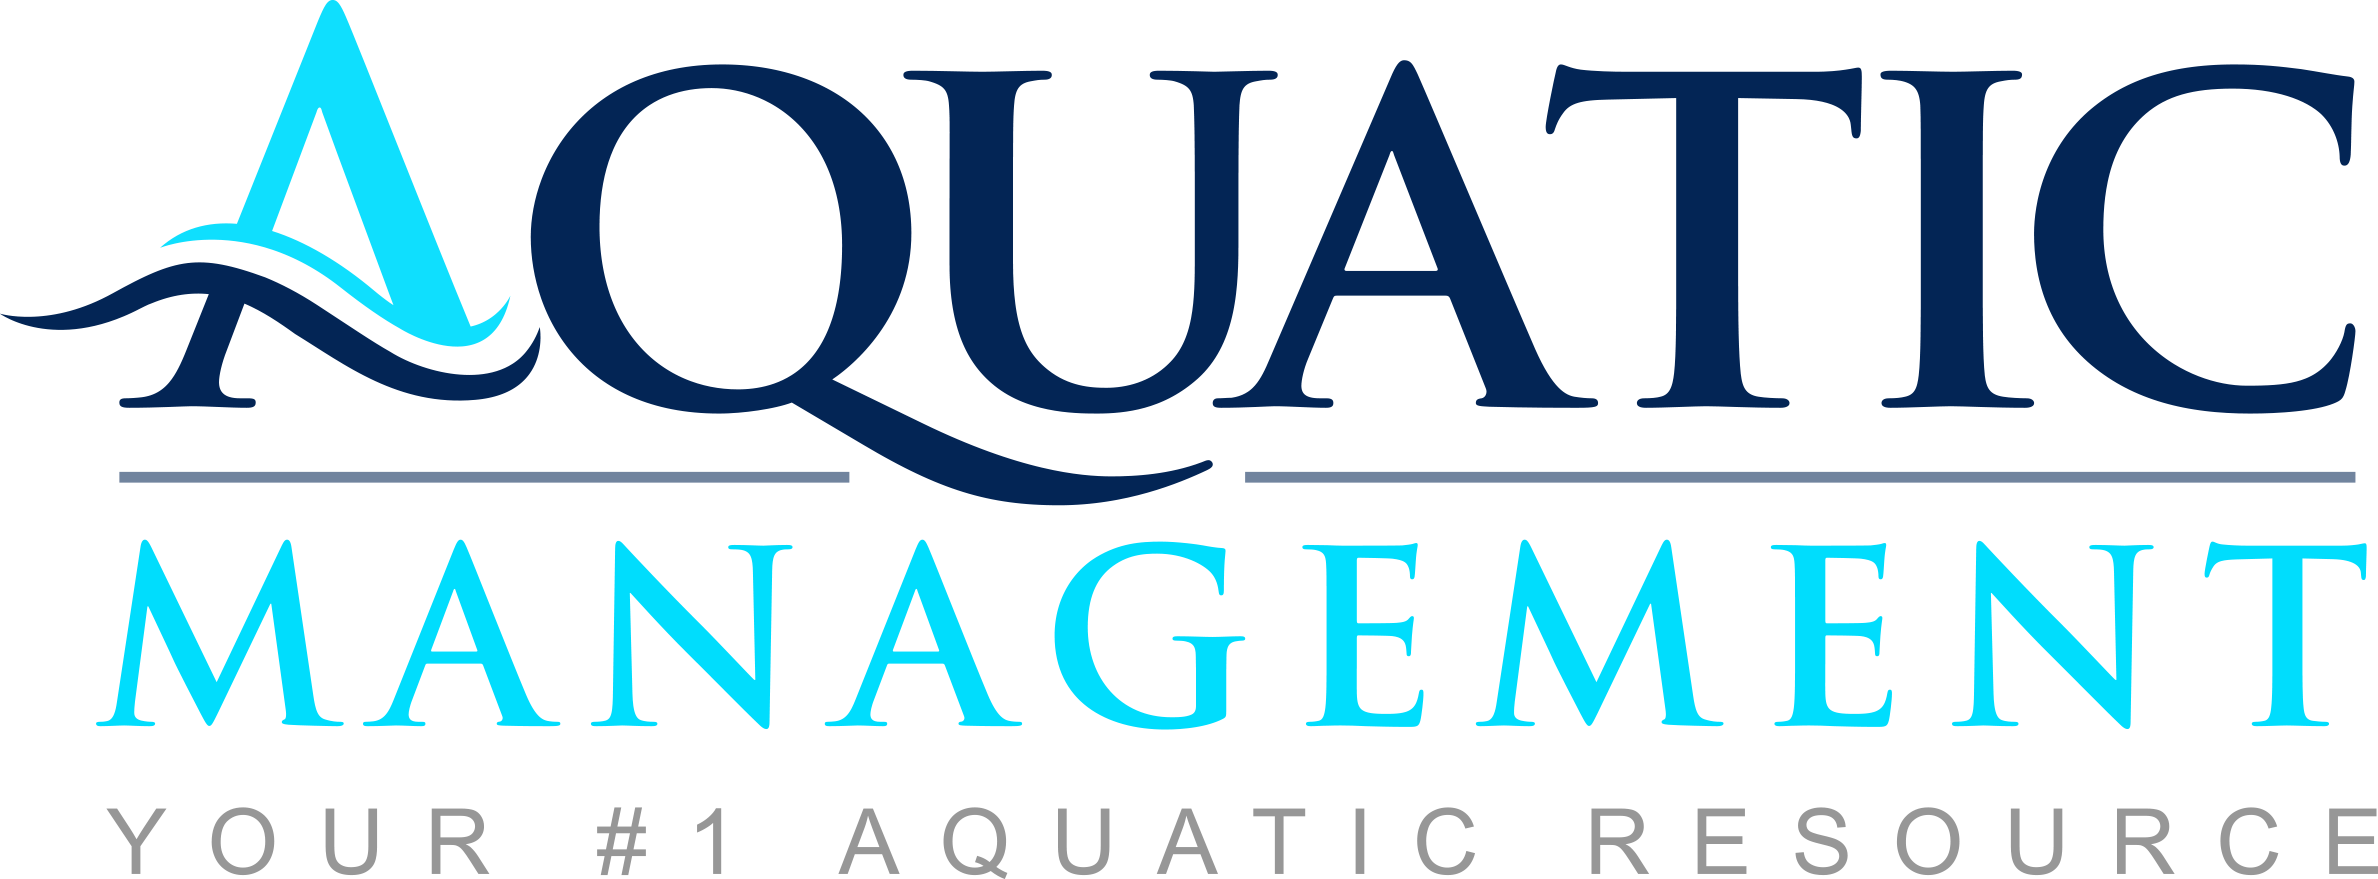 Aquatic Management Services